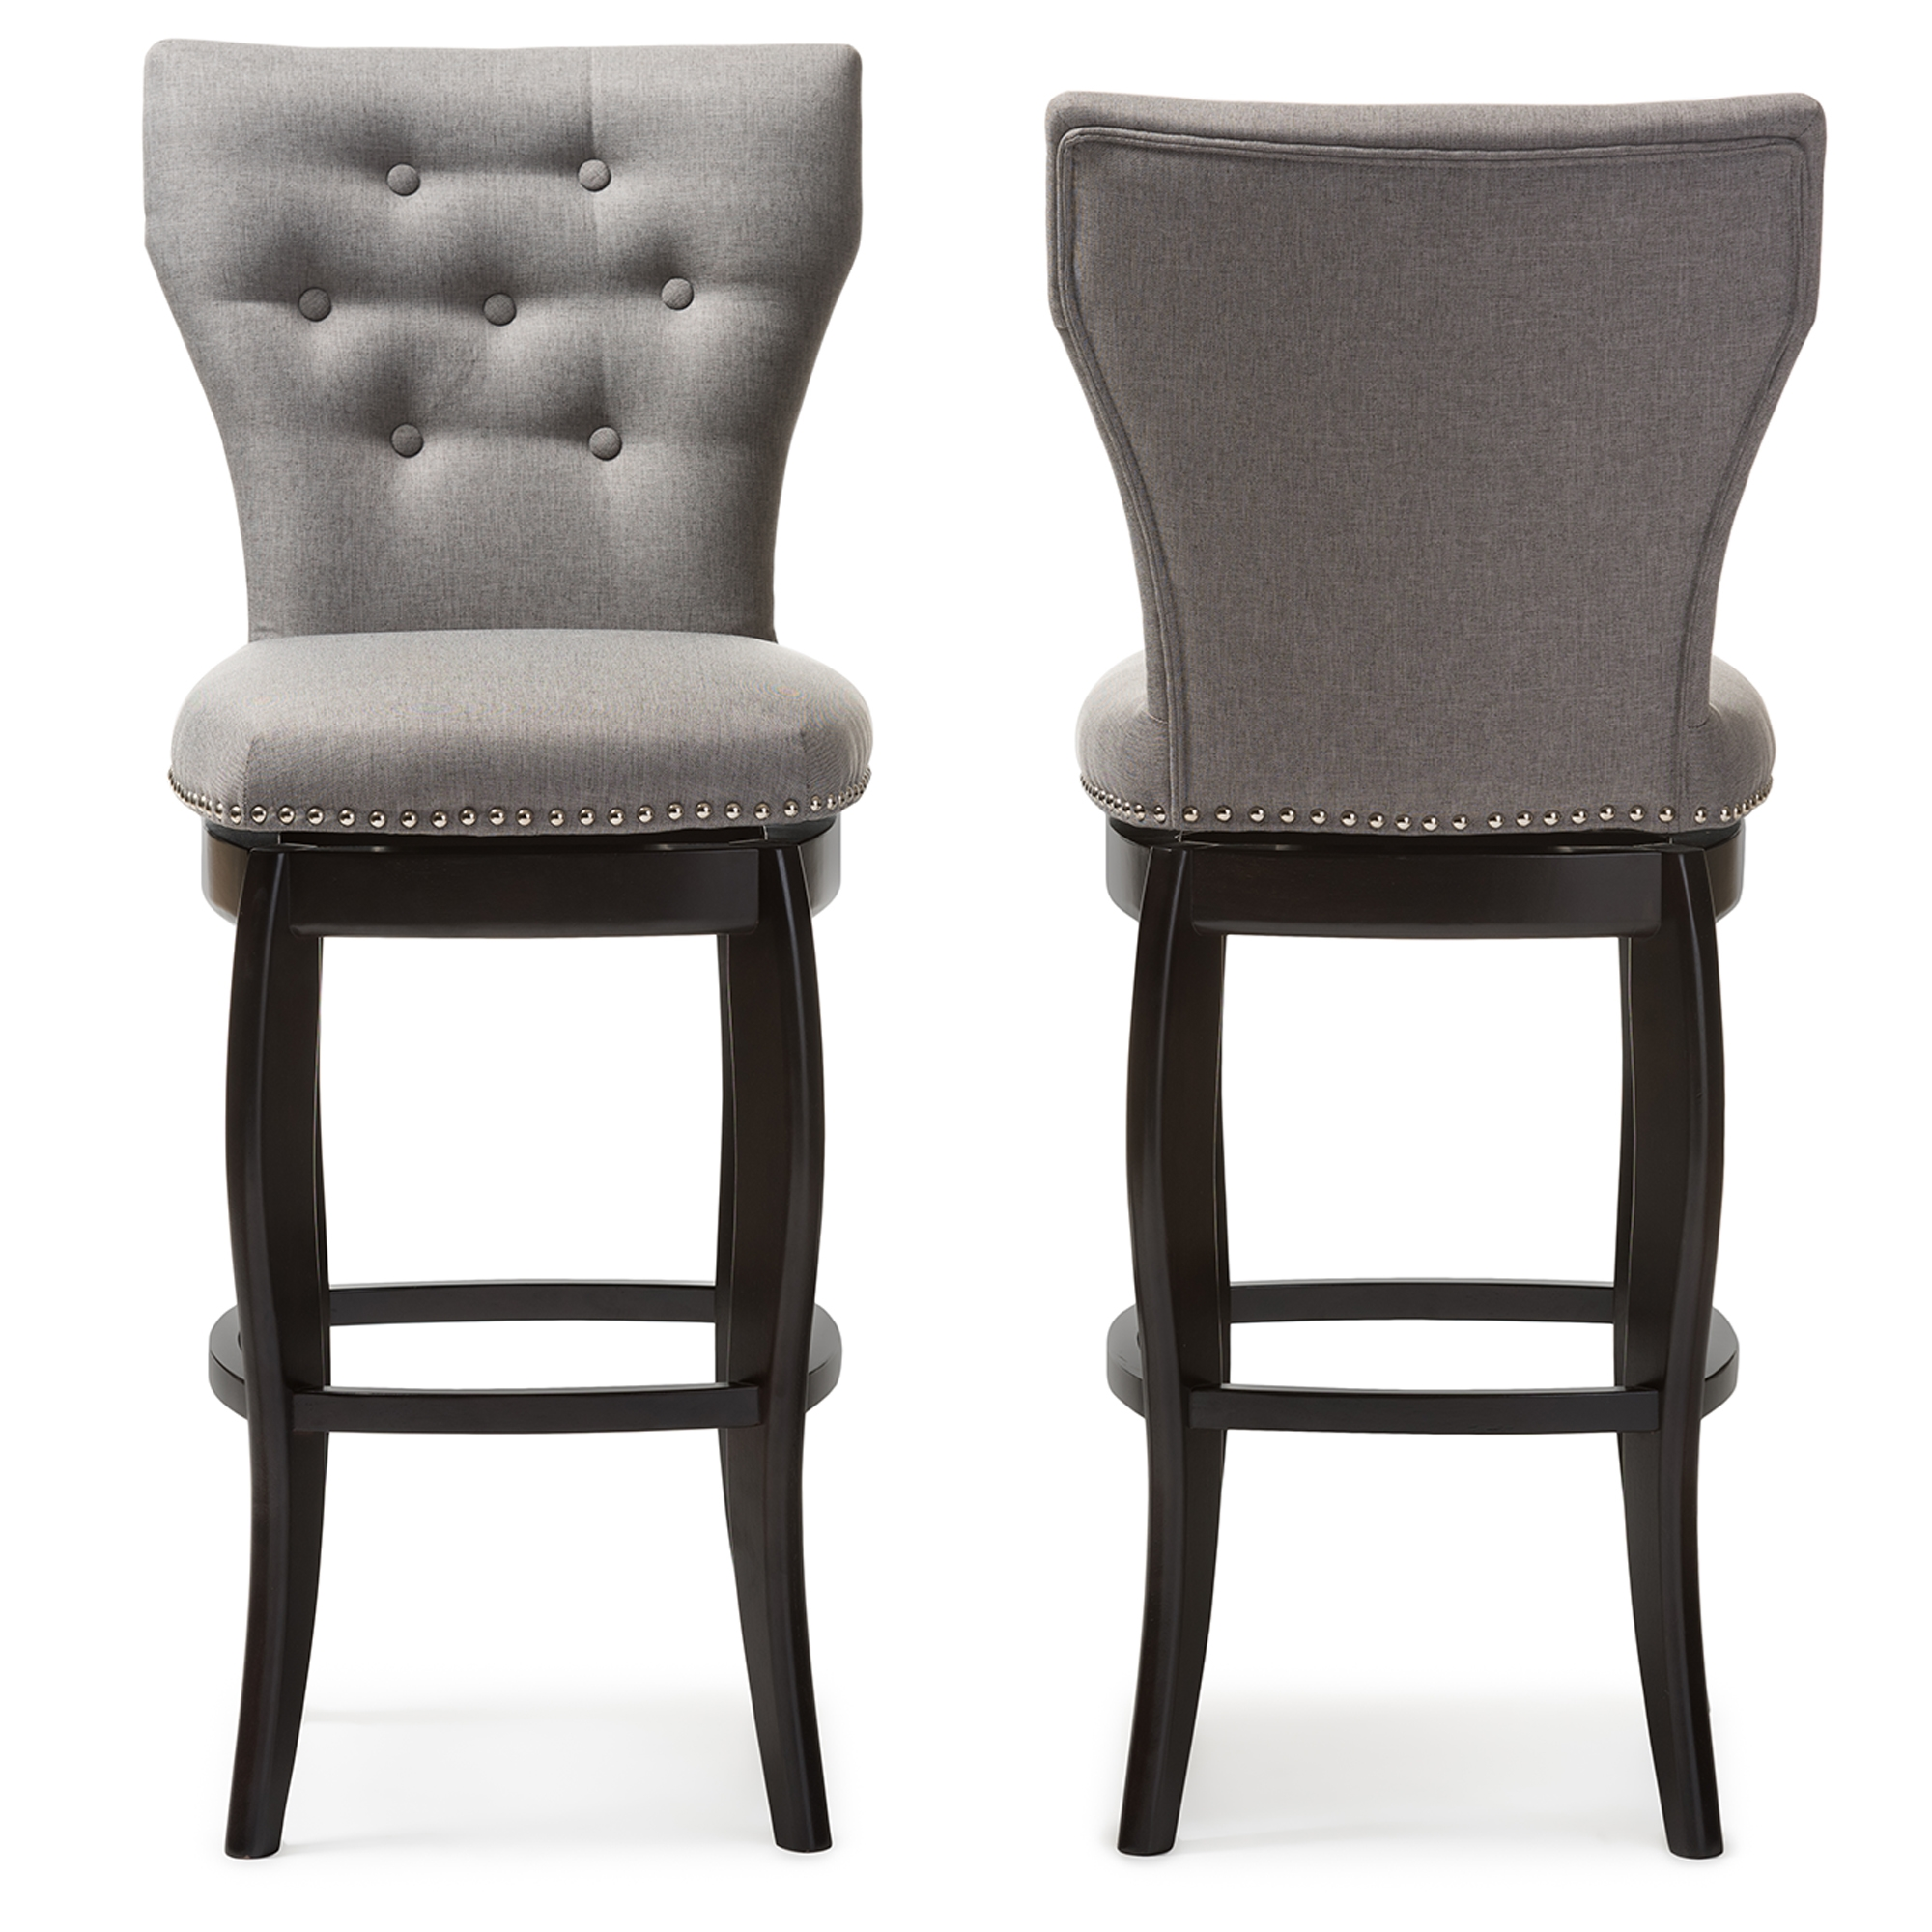 Baxton Studio Leonice Modern and Contemporary Grey Fabric Upholstered Button-tufted 29-Inch Swivel  sc 1 st  Baxton Studio Outlet & Bar Height Bar Stools | Bar Furniture | Affordable Modern ... islam-shia.org